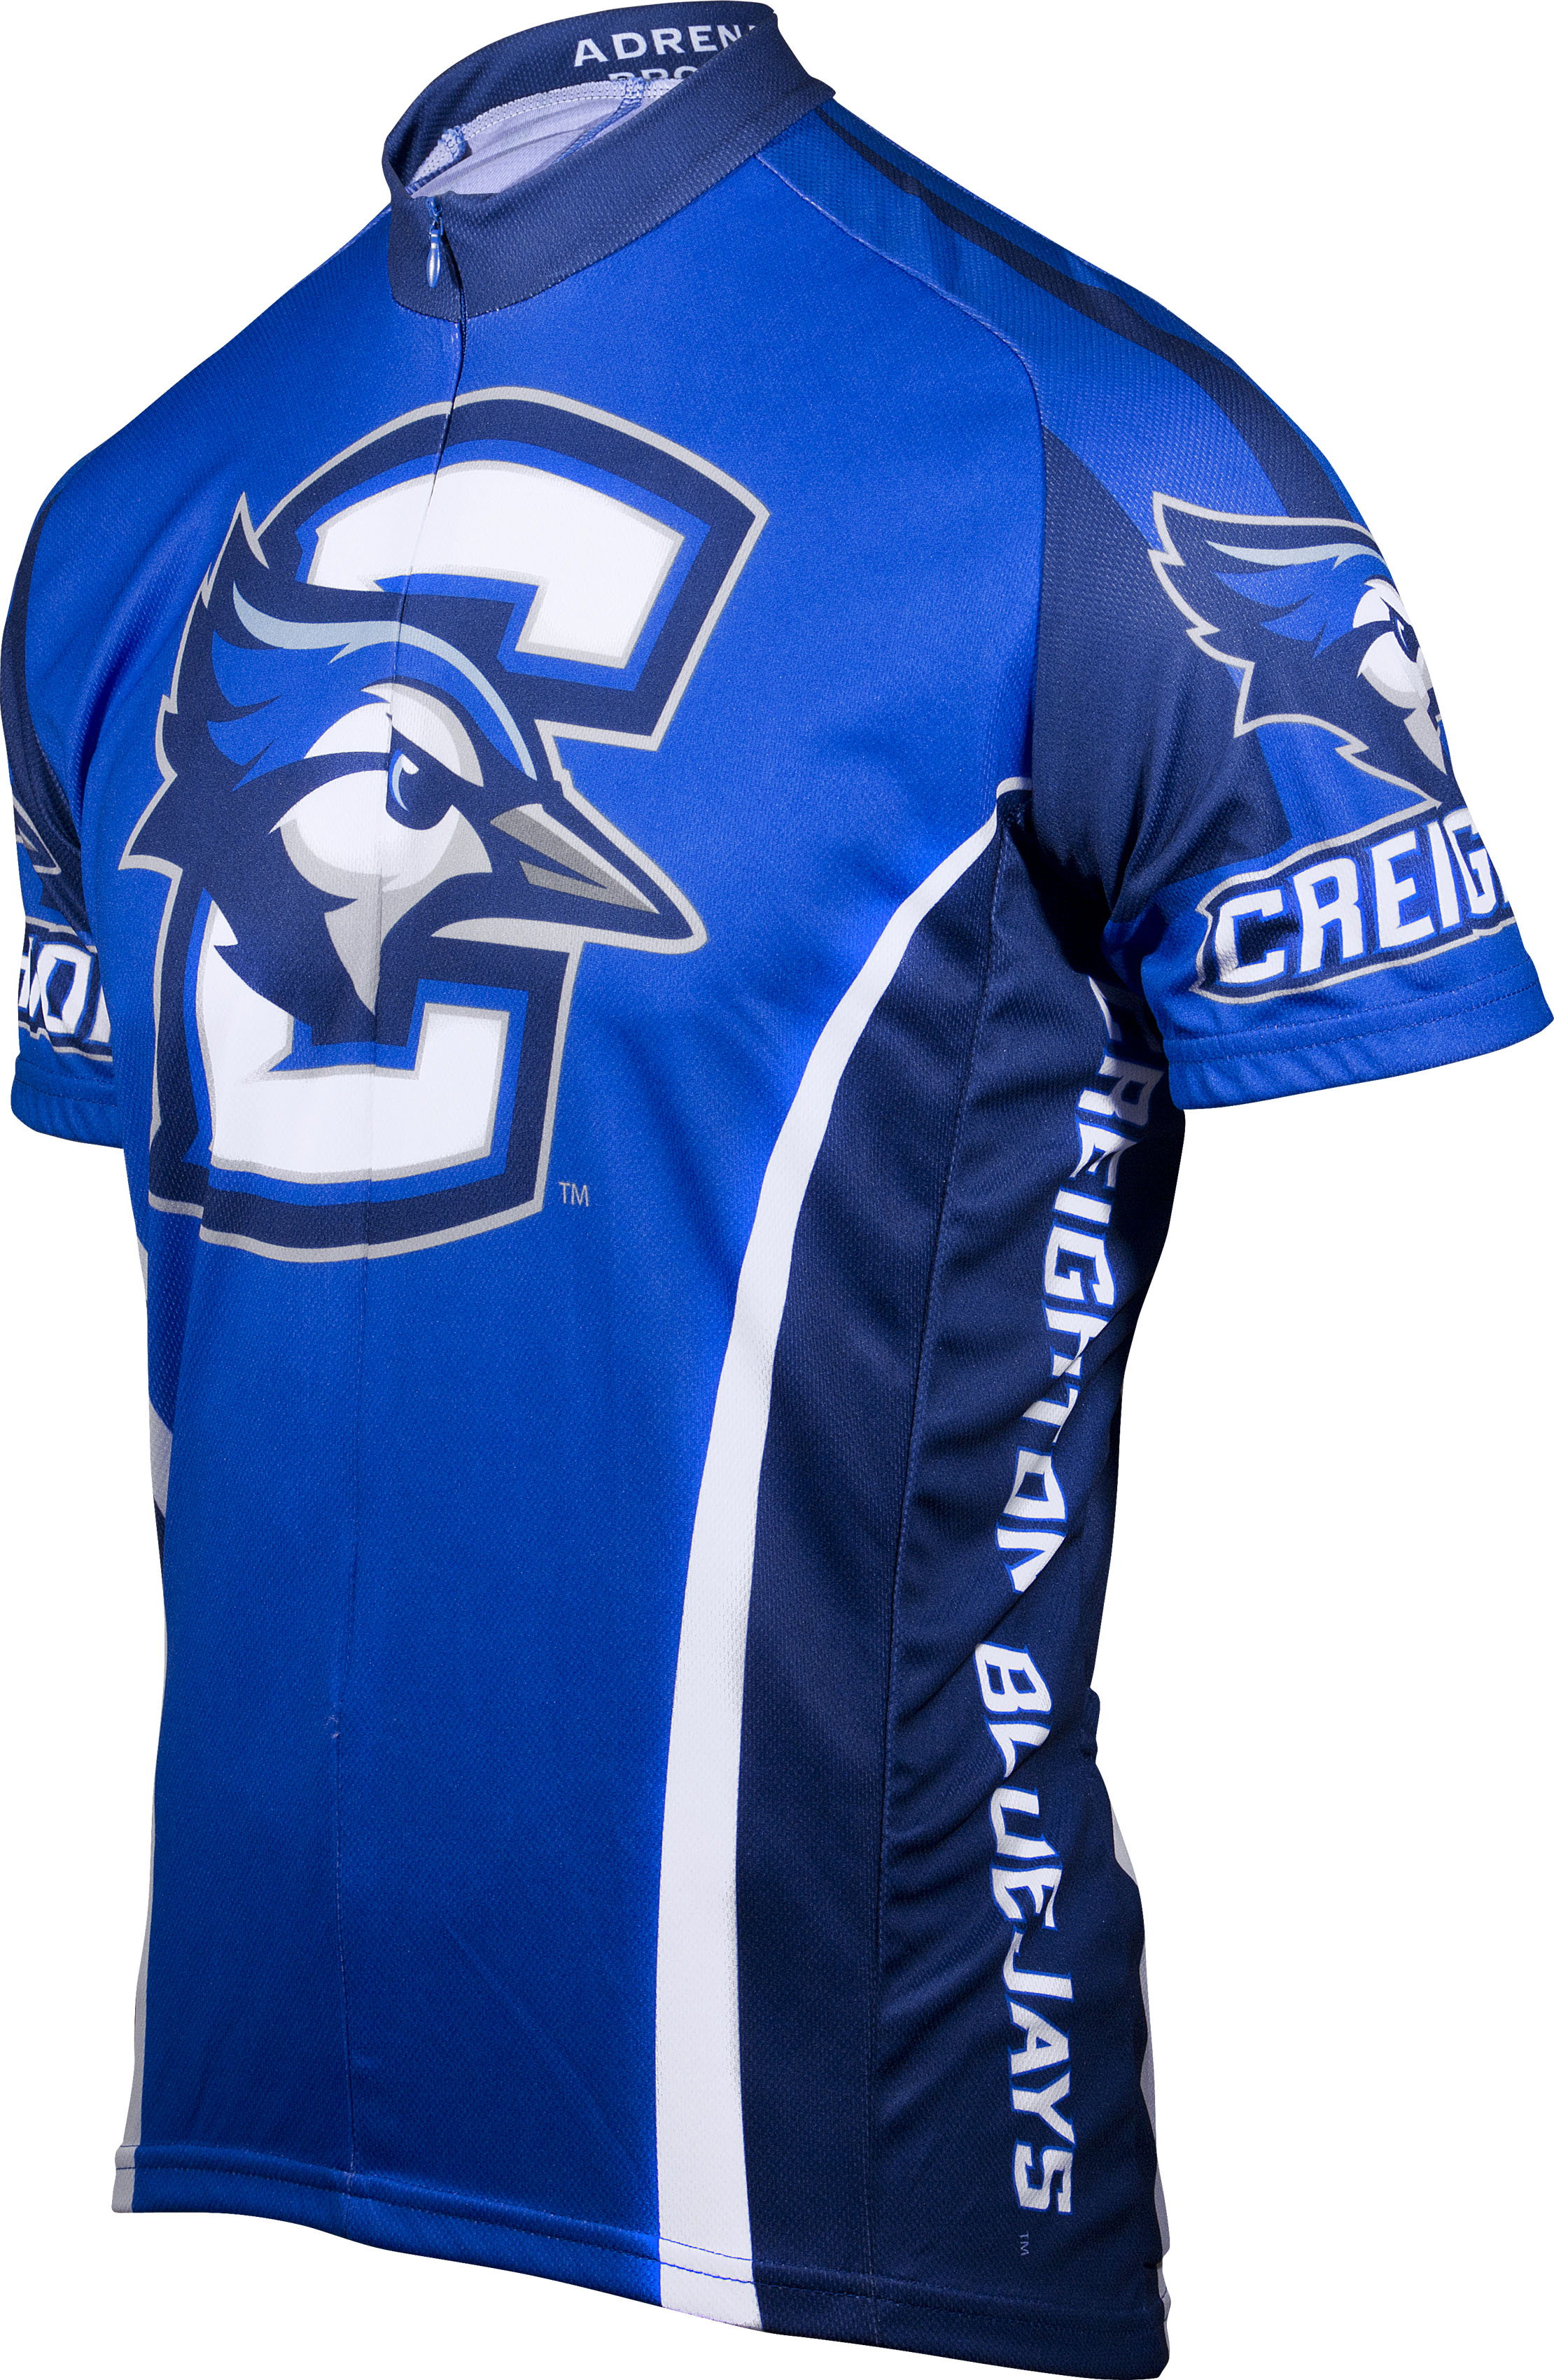 Creighton University Cycling Jersey 3XL